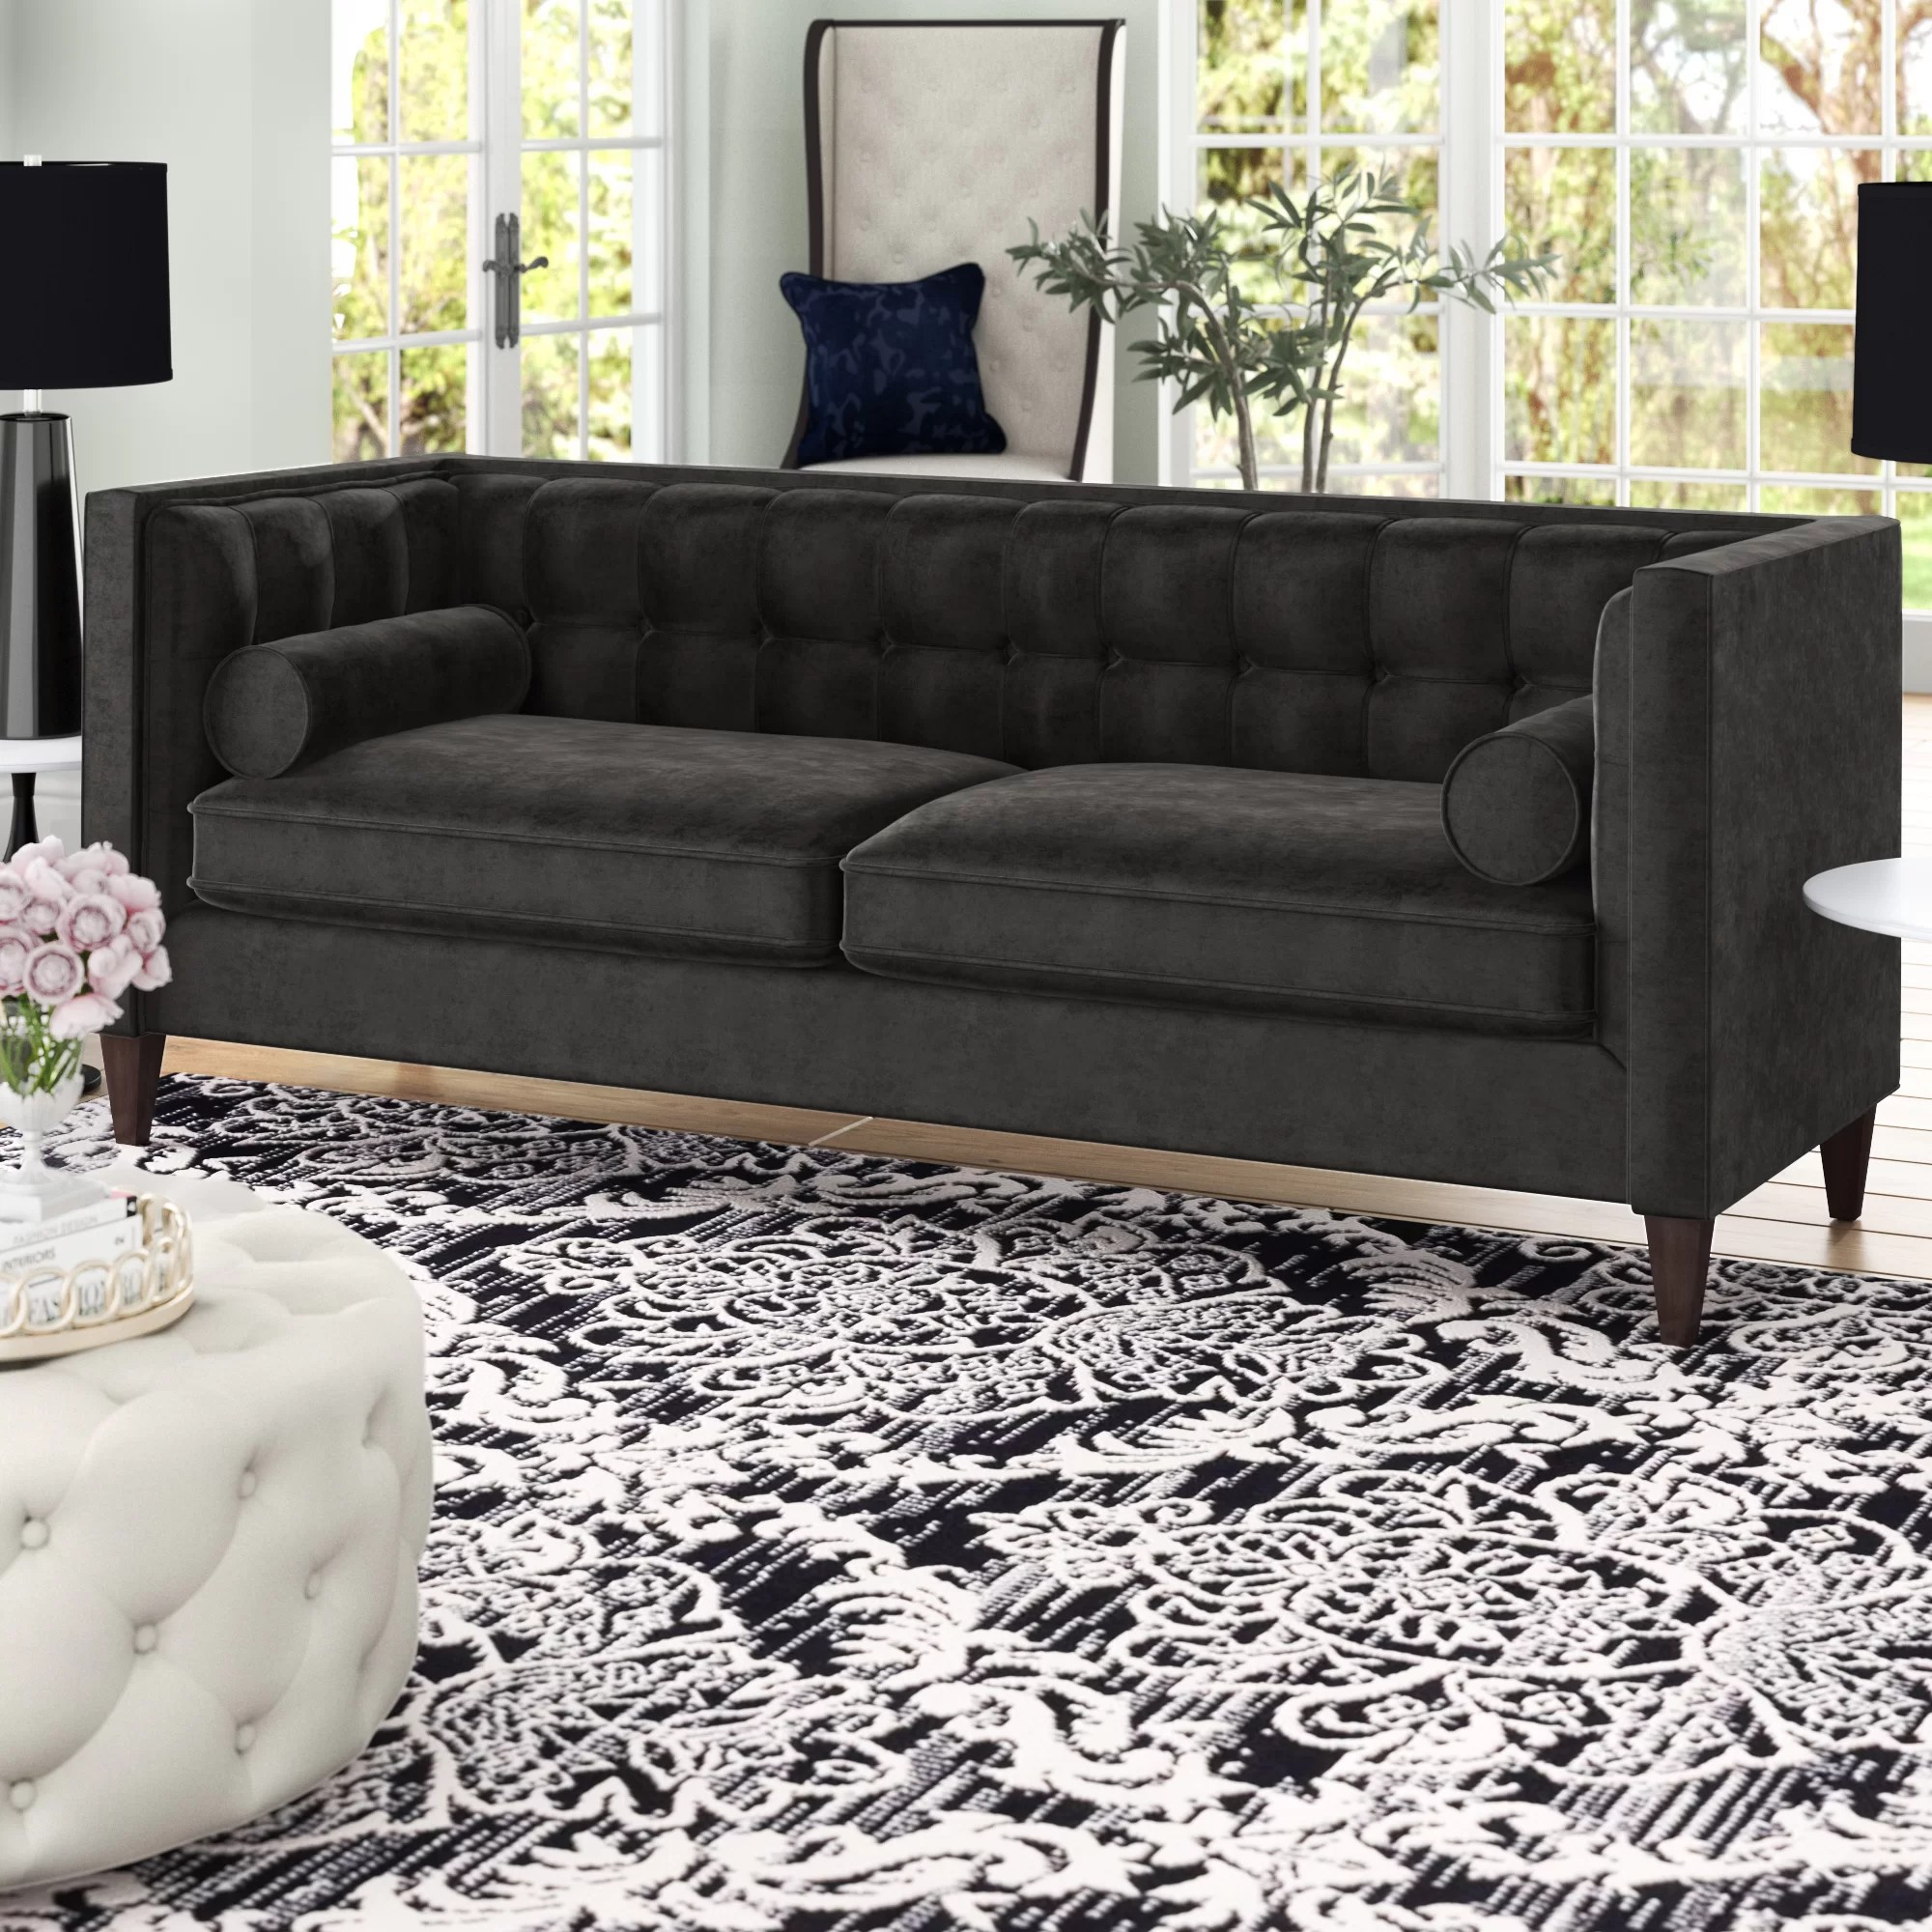 Sofa In Chesterfield Look Harcourt Tuxedo Chesterfield Sofa